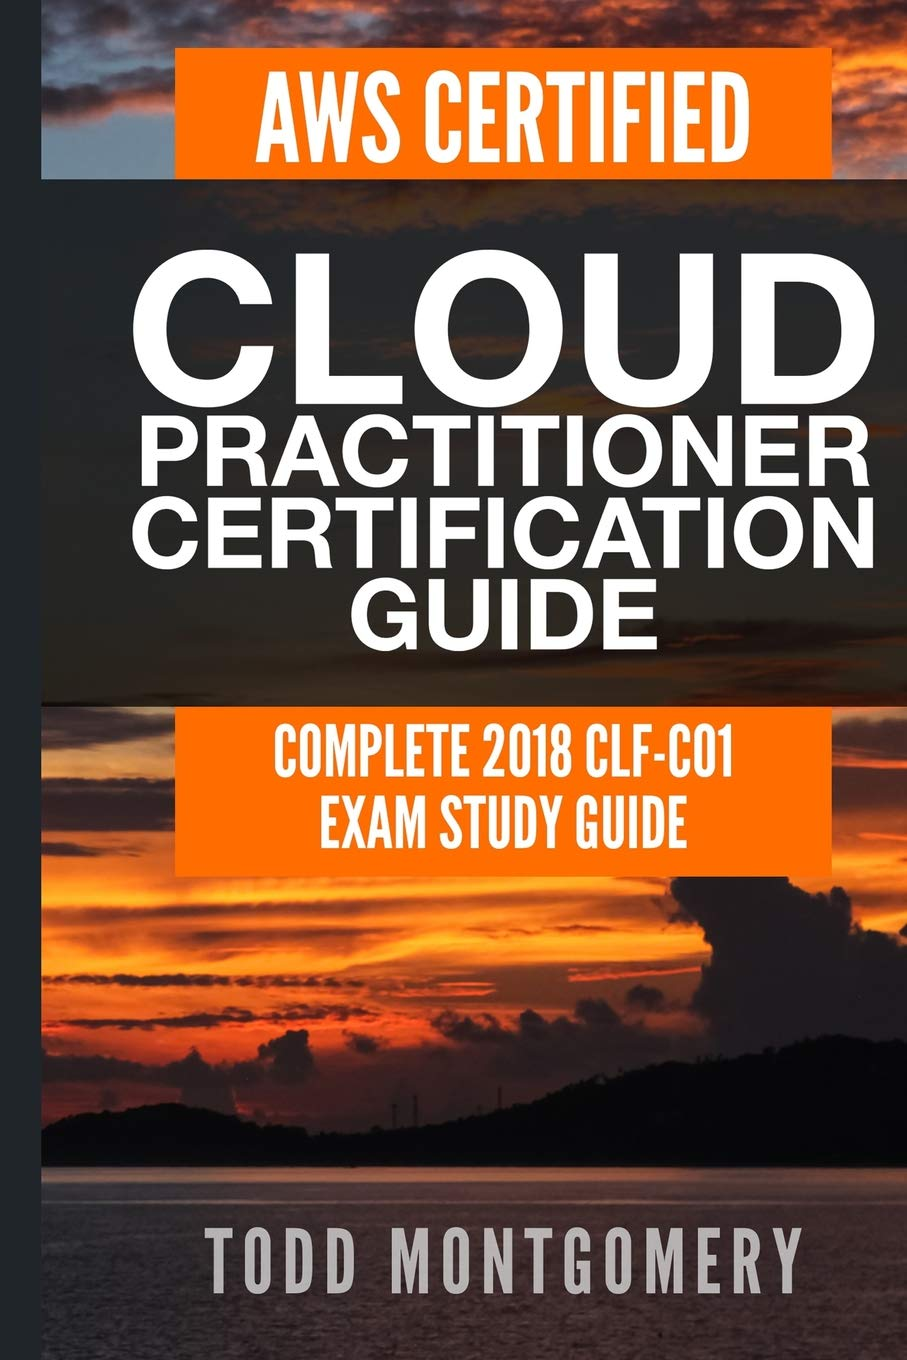 AWS CERTIFIED CLOUD PRACTITIONER CERTIFICATION GUIDE: COMPLETE 2018